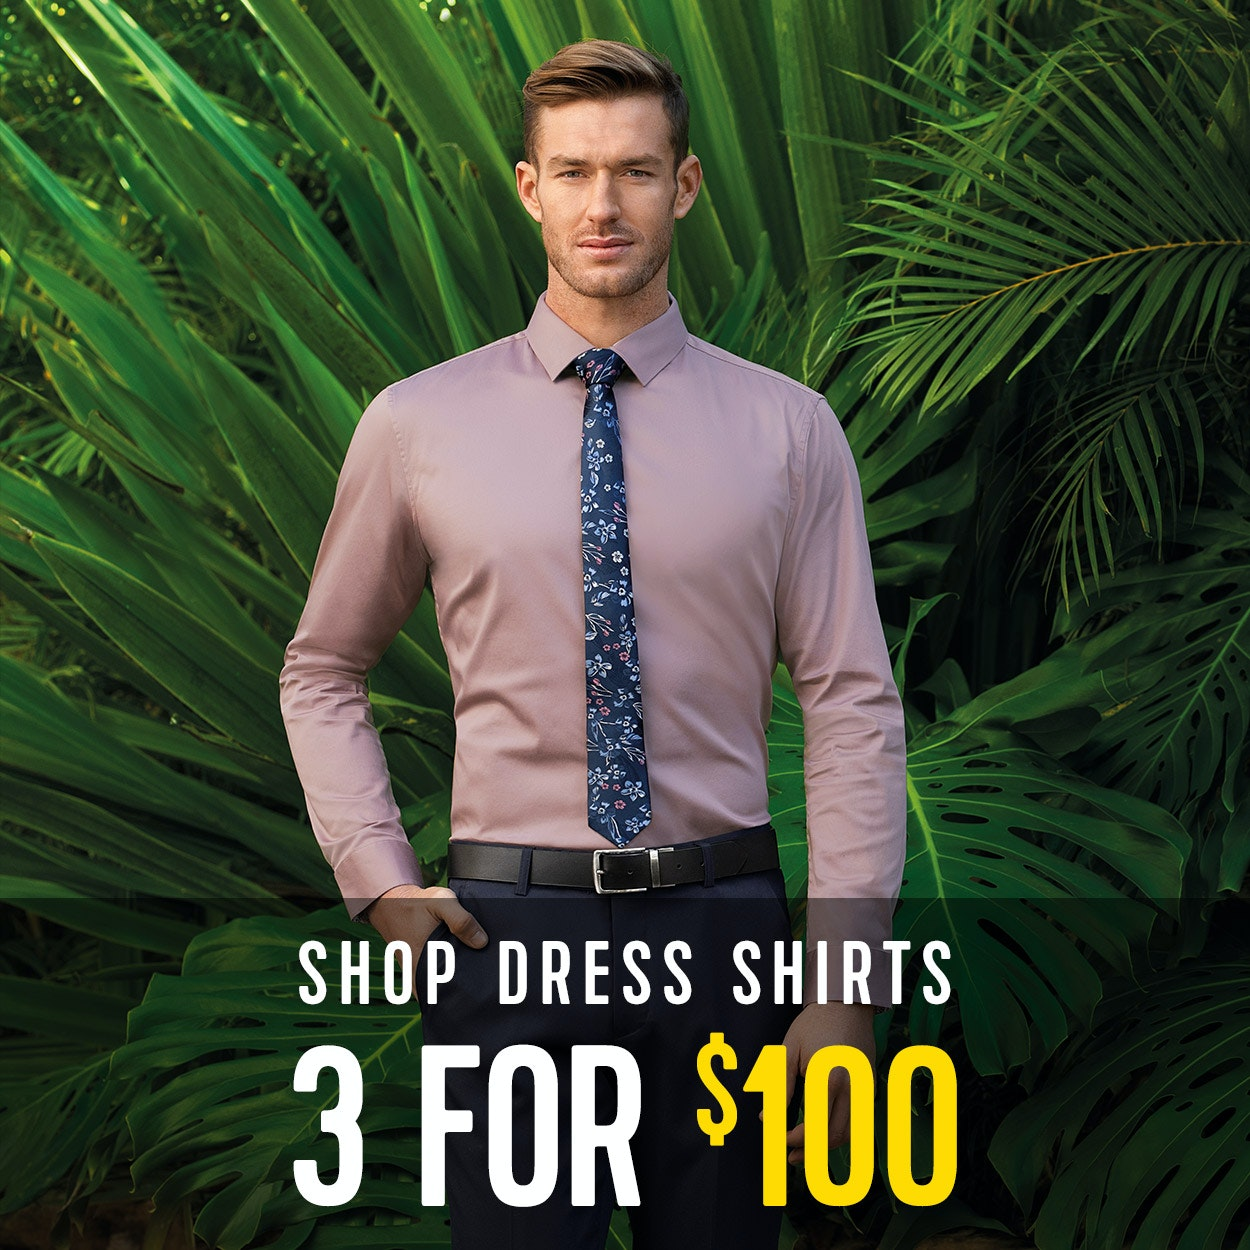 Mens Dress Shirts - 3 for $100